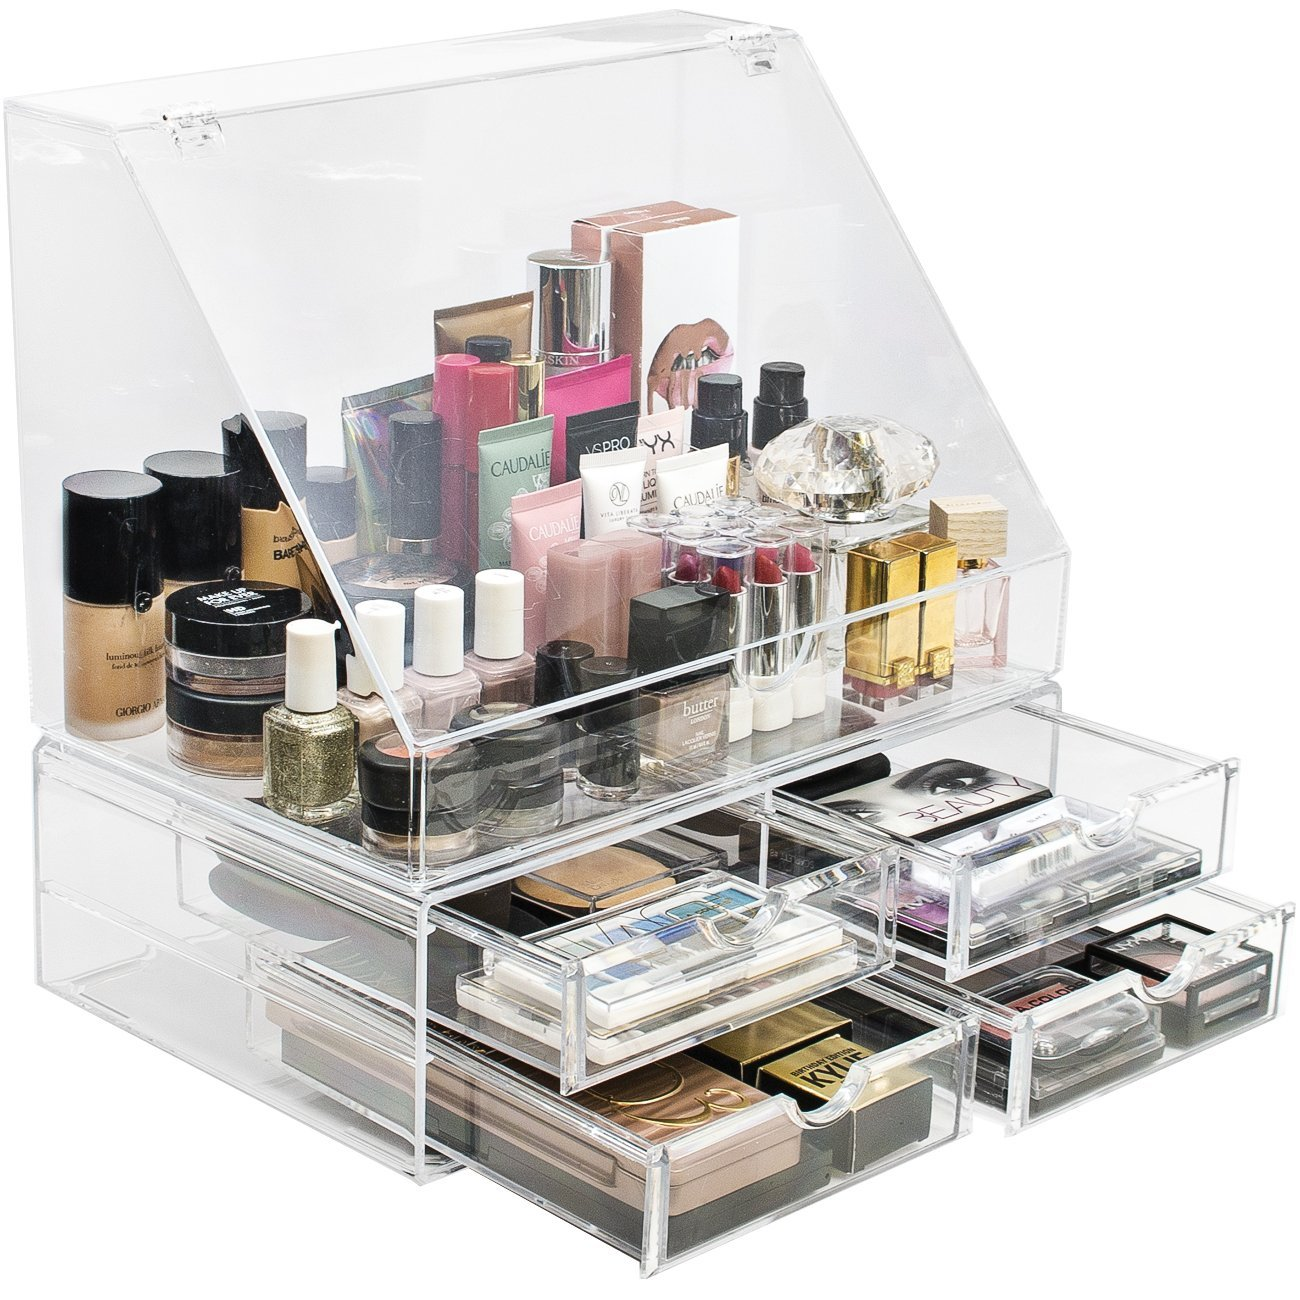 Acrylic Cosmetics Makeup Organizer Storage Case Holder with Slanted Front Open Lid-Cosmetic Storage